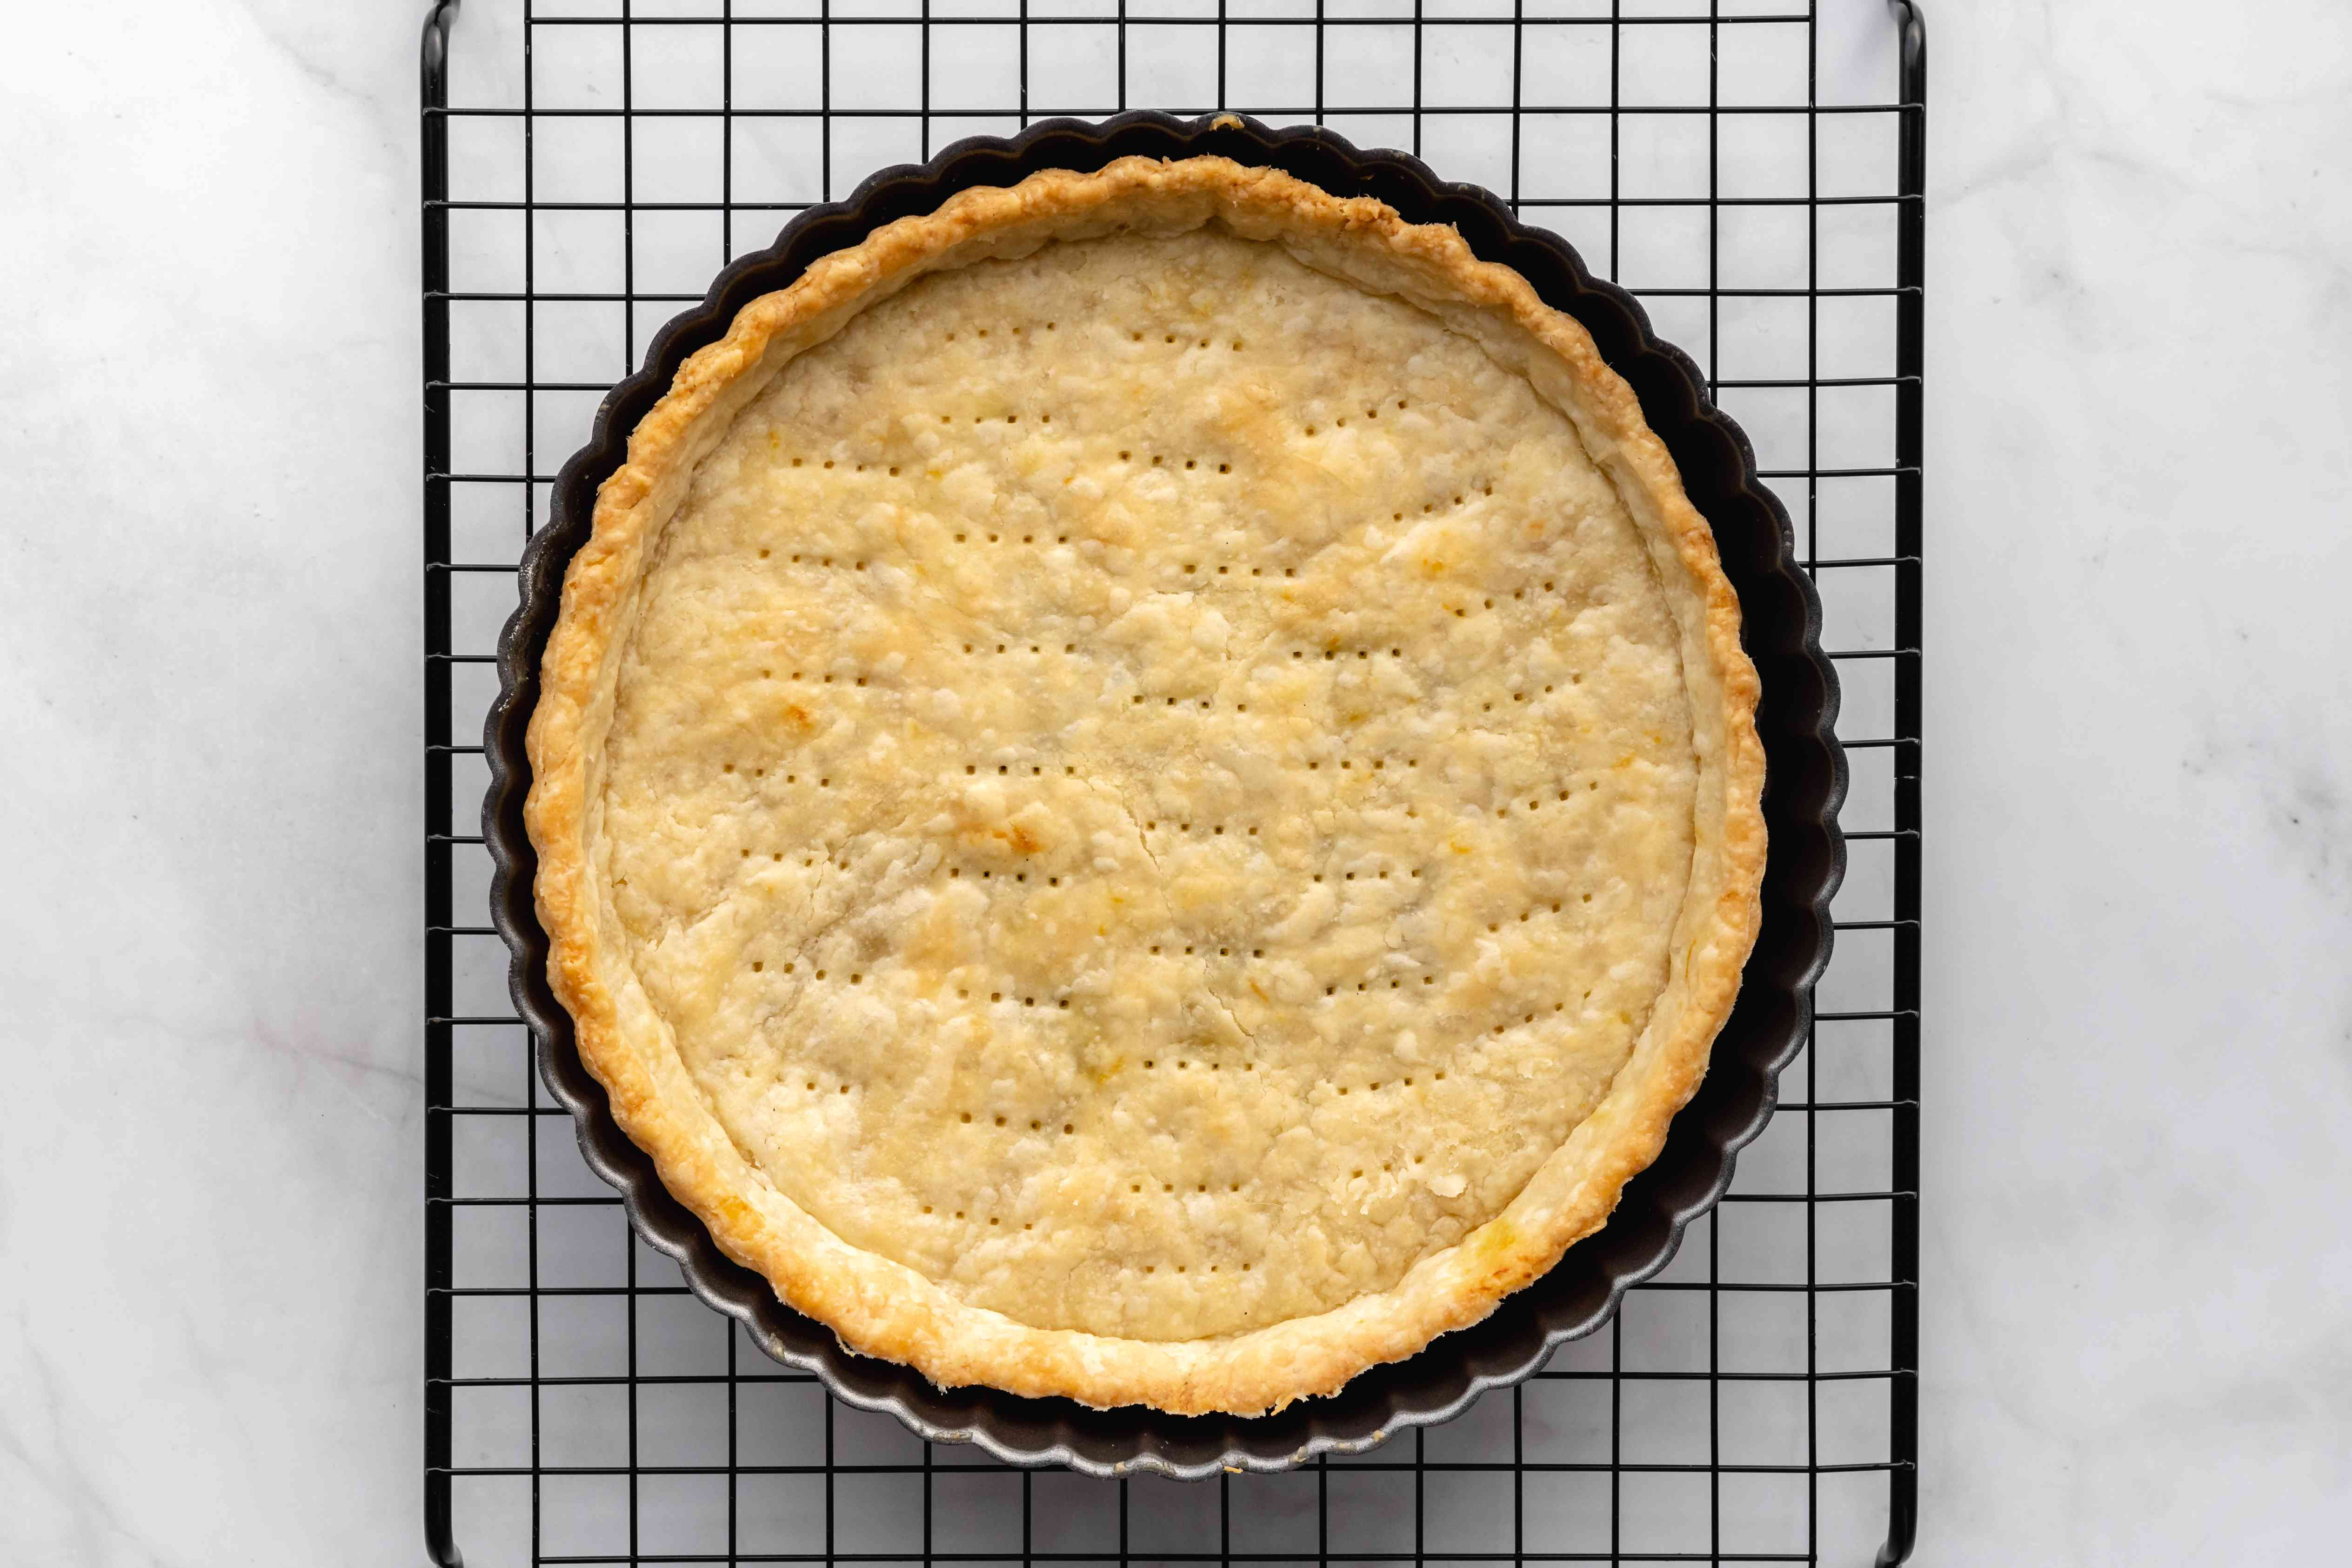 baked tart dough in a tart pan cooling on a cooling rack